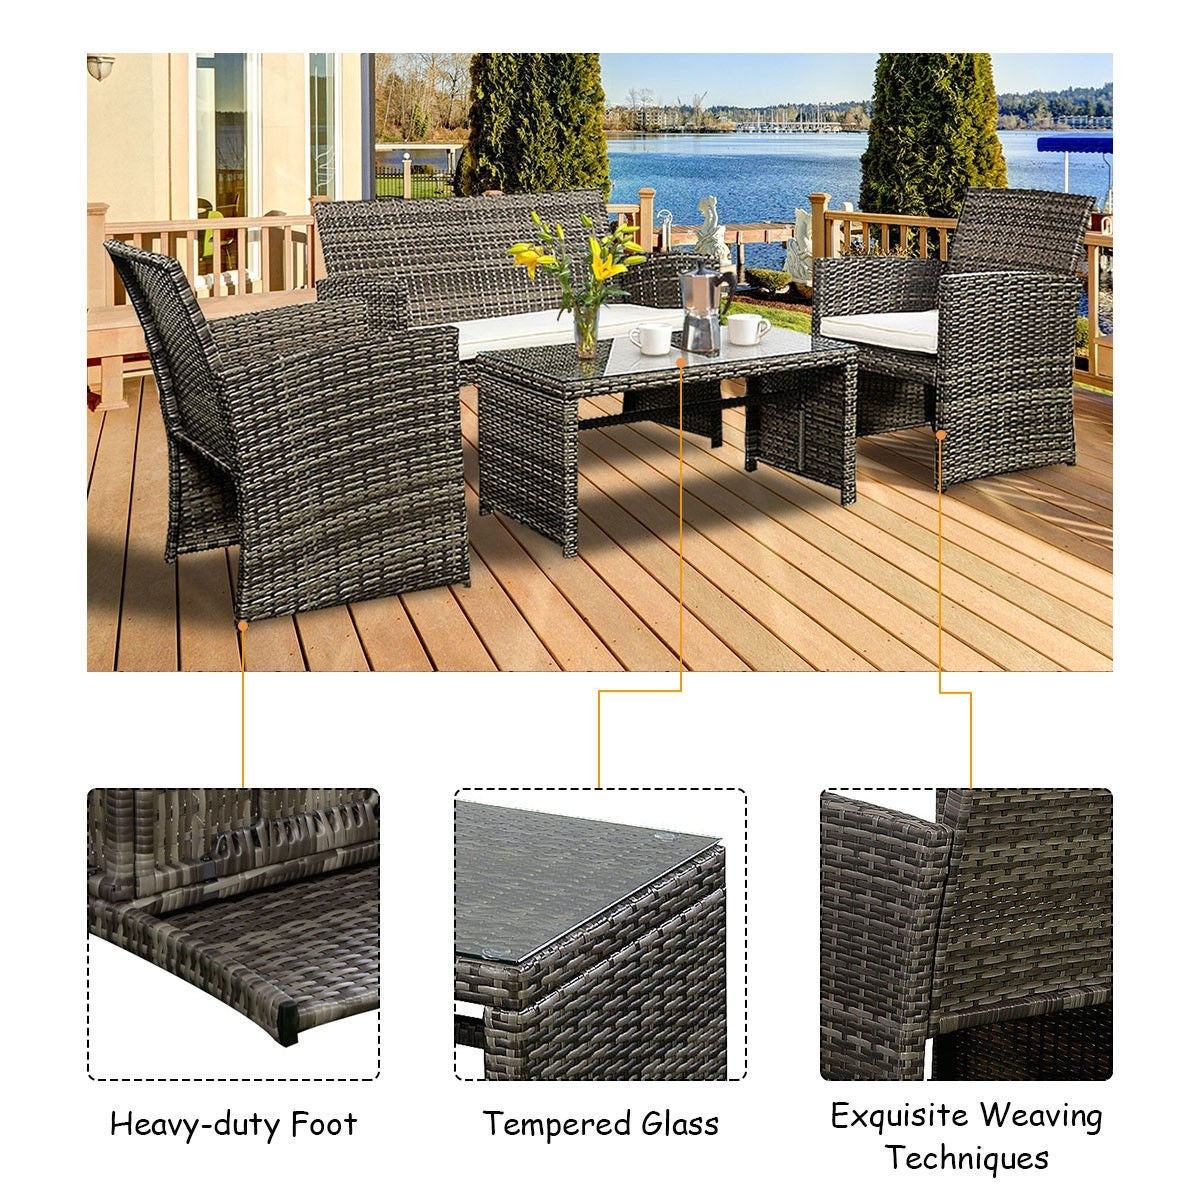 Costway 4 Pc Rattan Patio Furniture Set Garden Lawn Sofa Cushioned Seat Mix  Gray Wicker   Free Shipping Today   Overstock   22217259